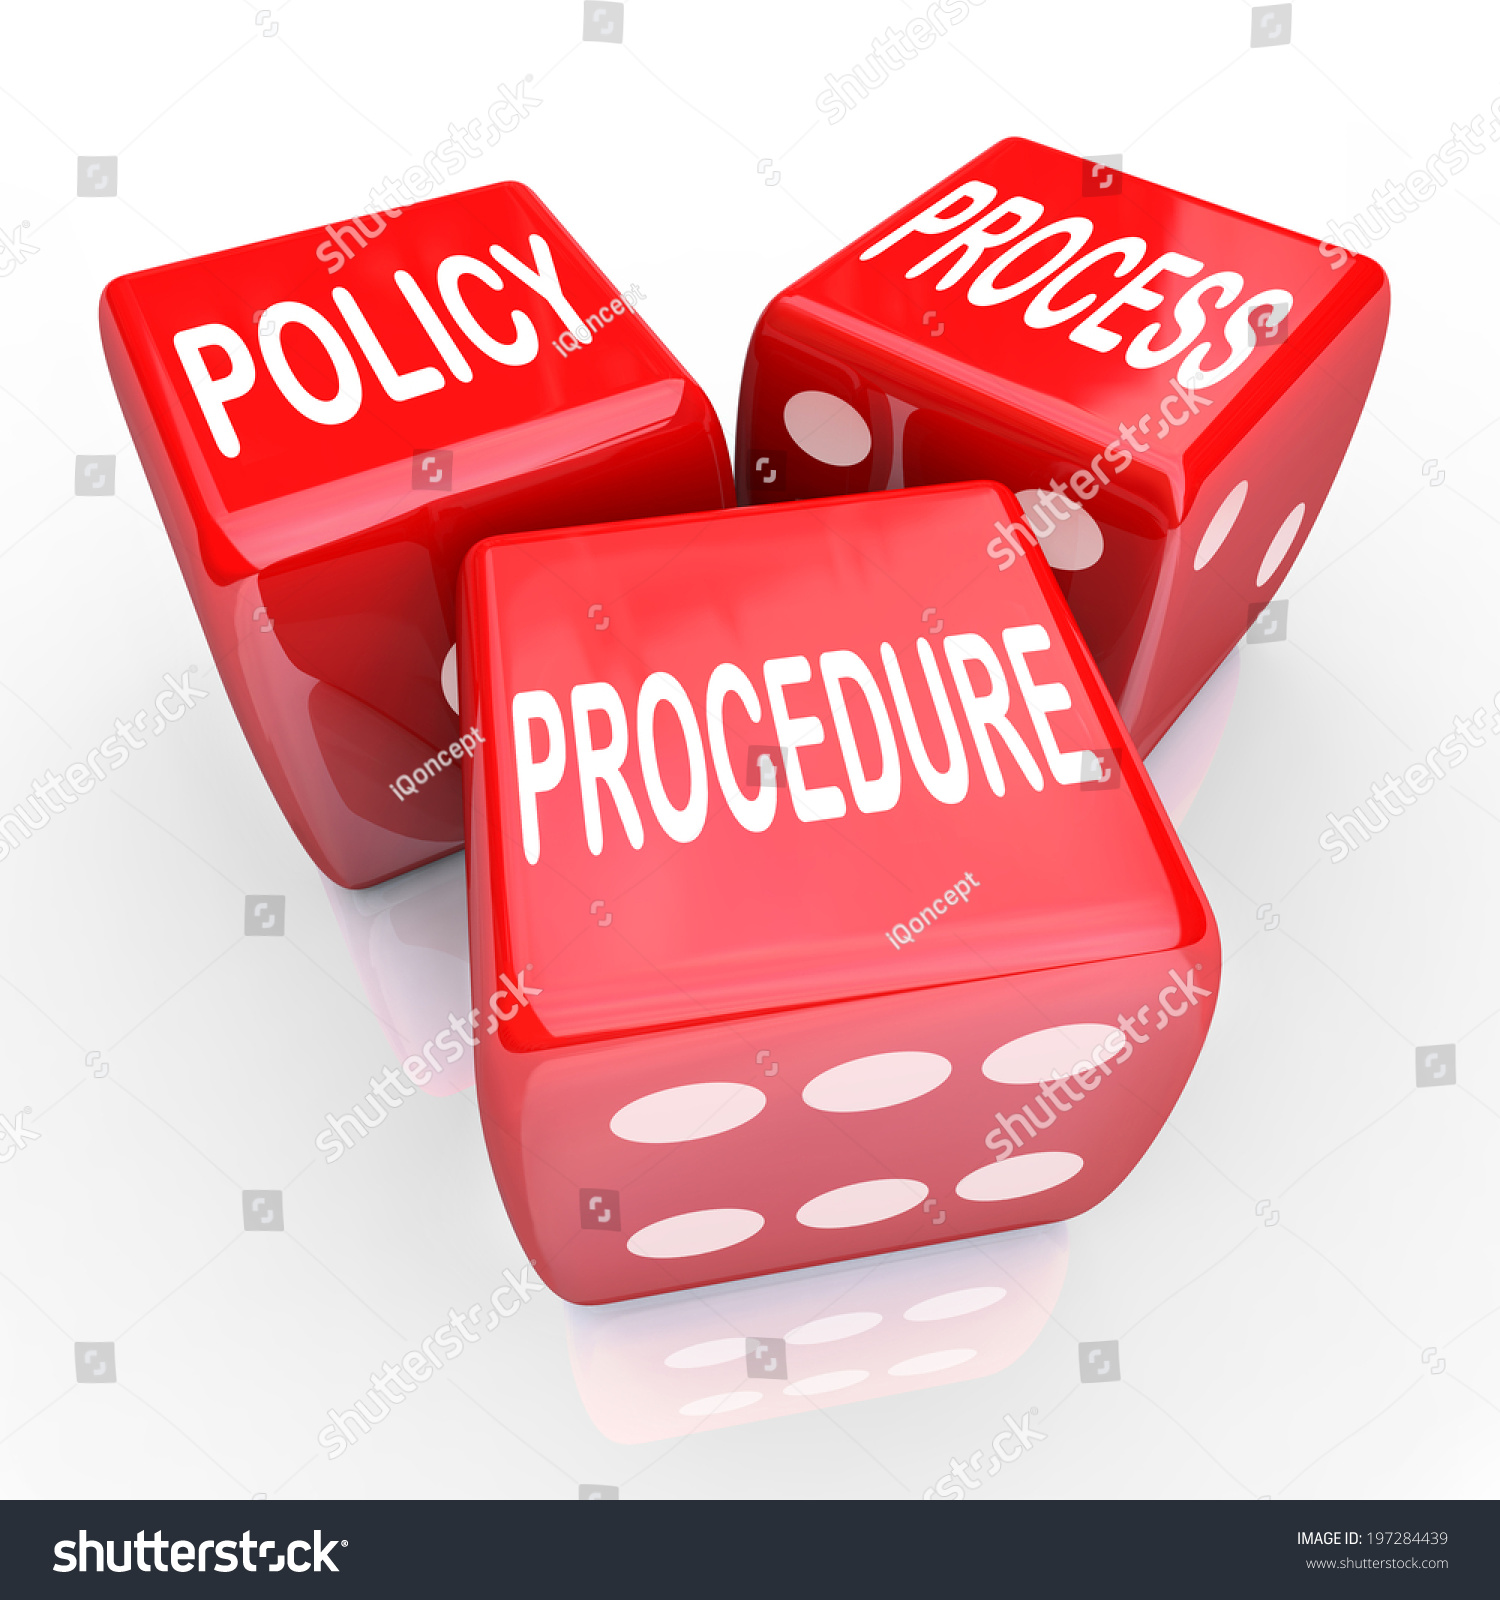 Rules Procedures: Policy, Process Procedure Words Three Red Dice